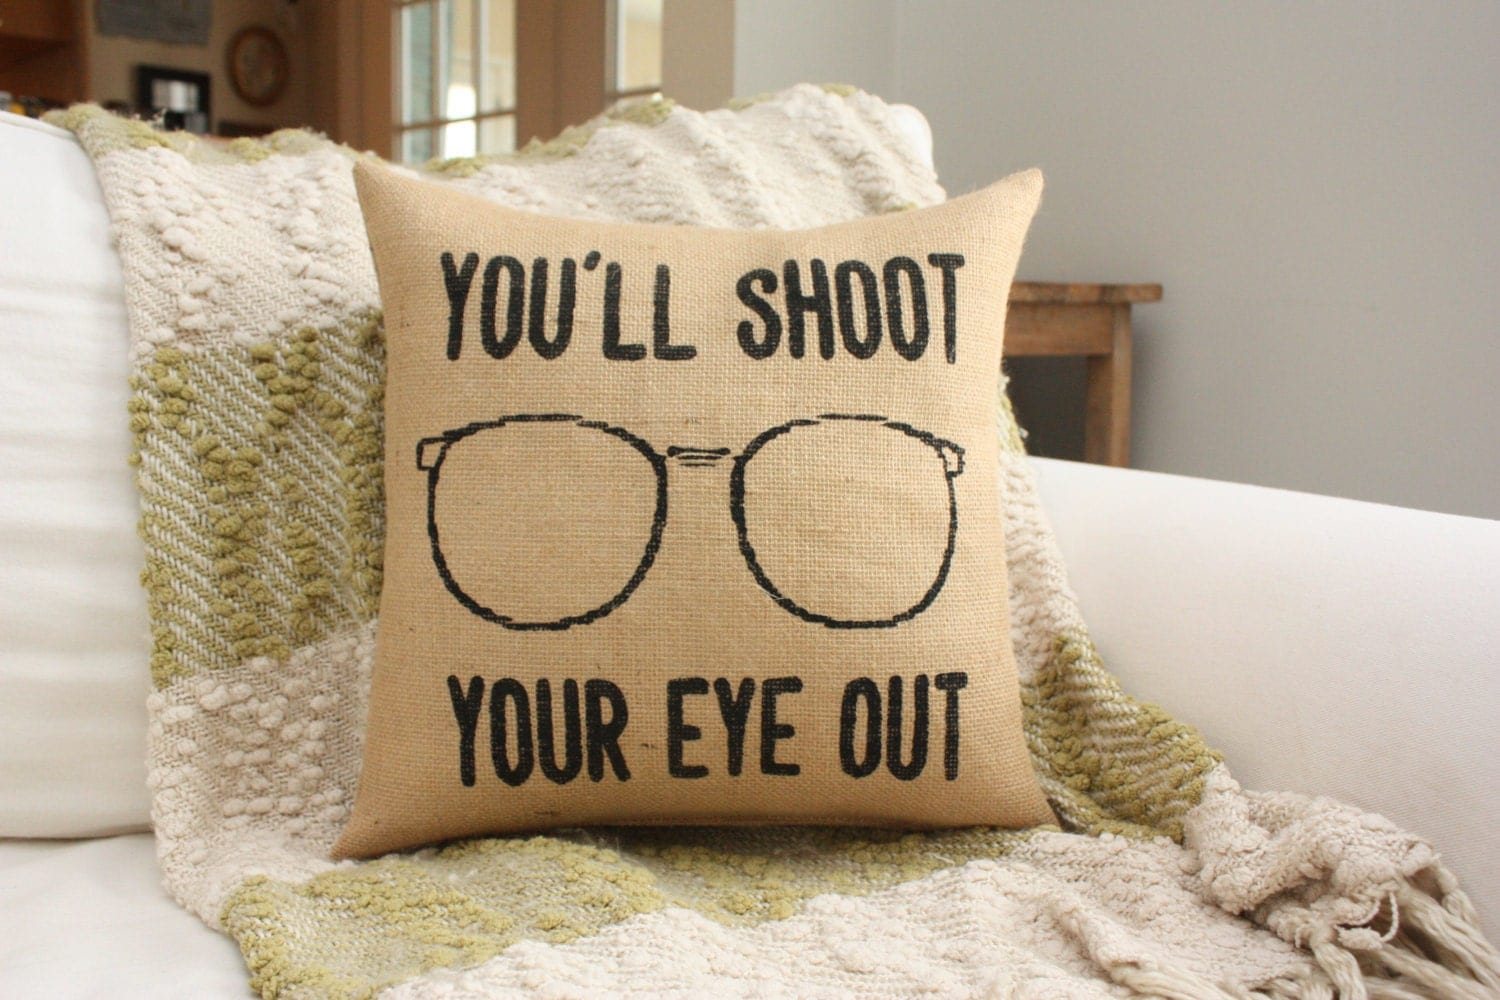 Burlap Pillow Christmas Story You'll Shoot Your Eye Out